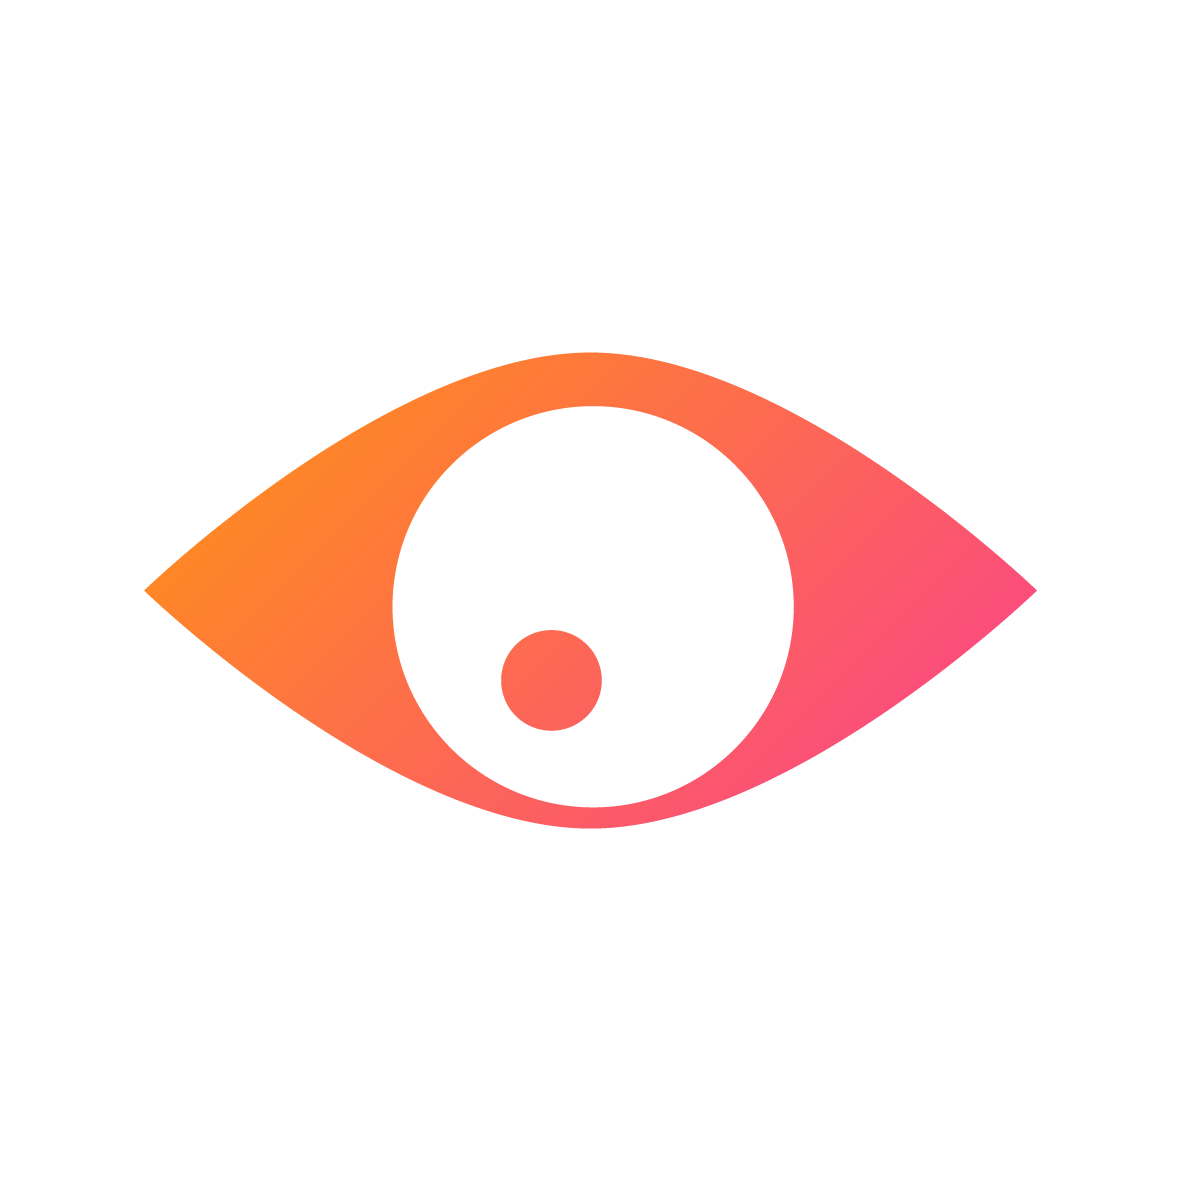 Eye icon RGB